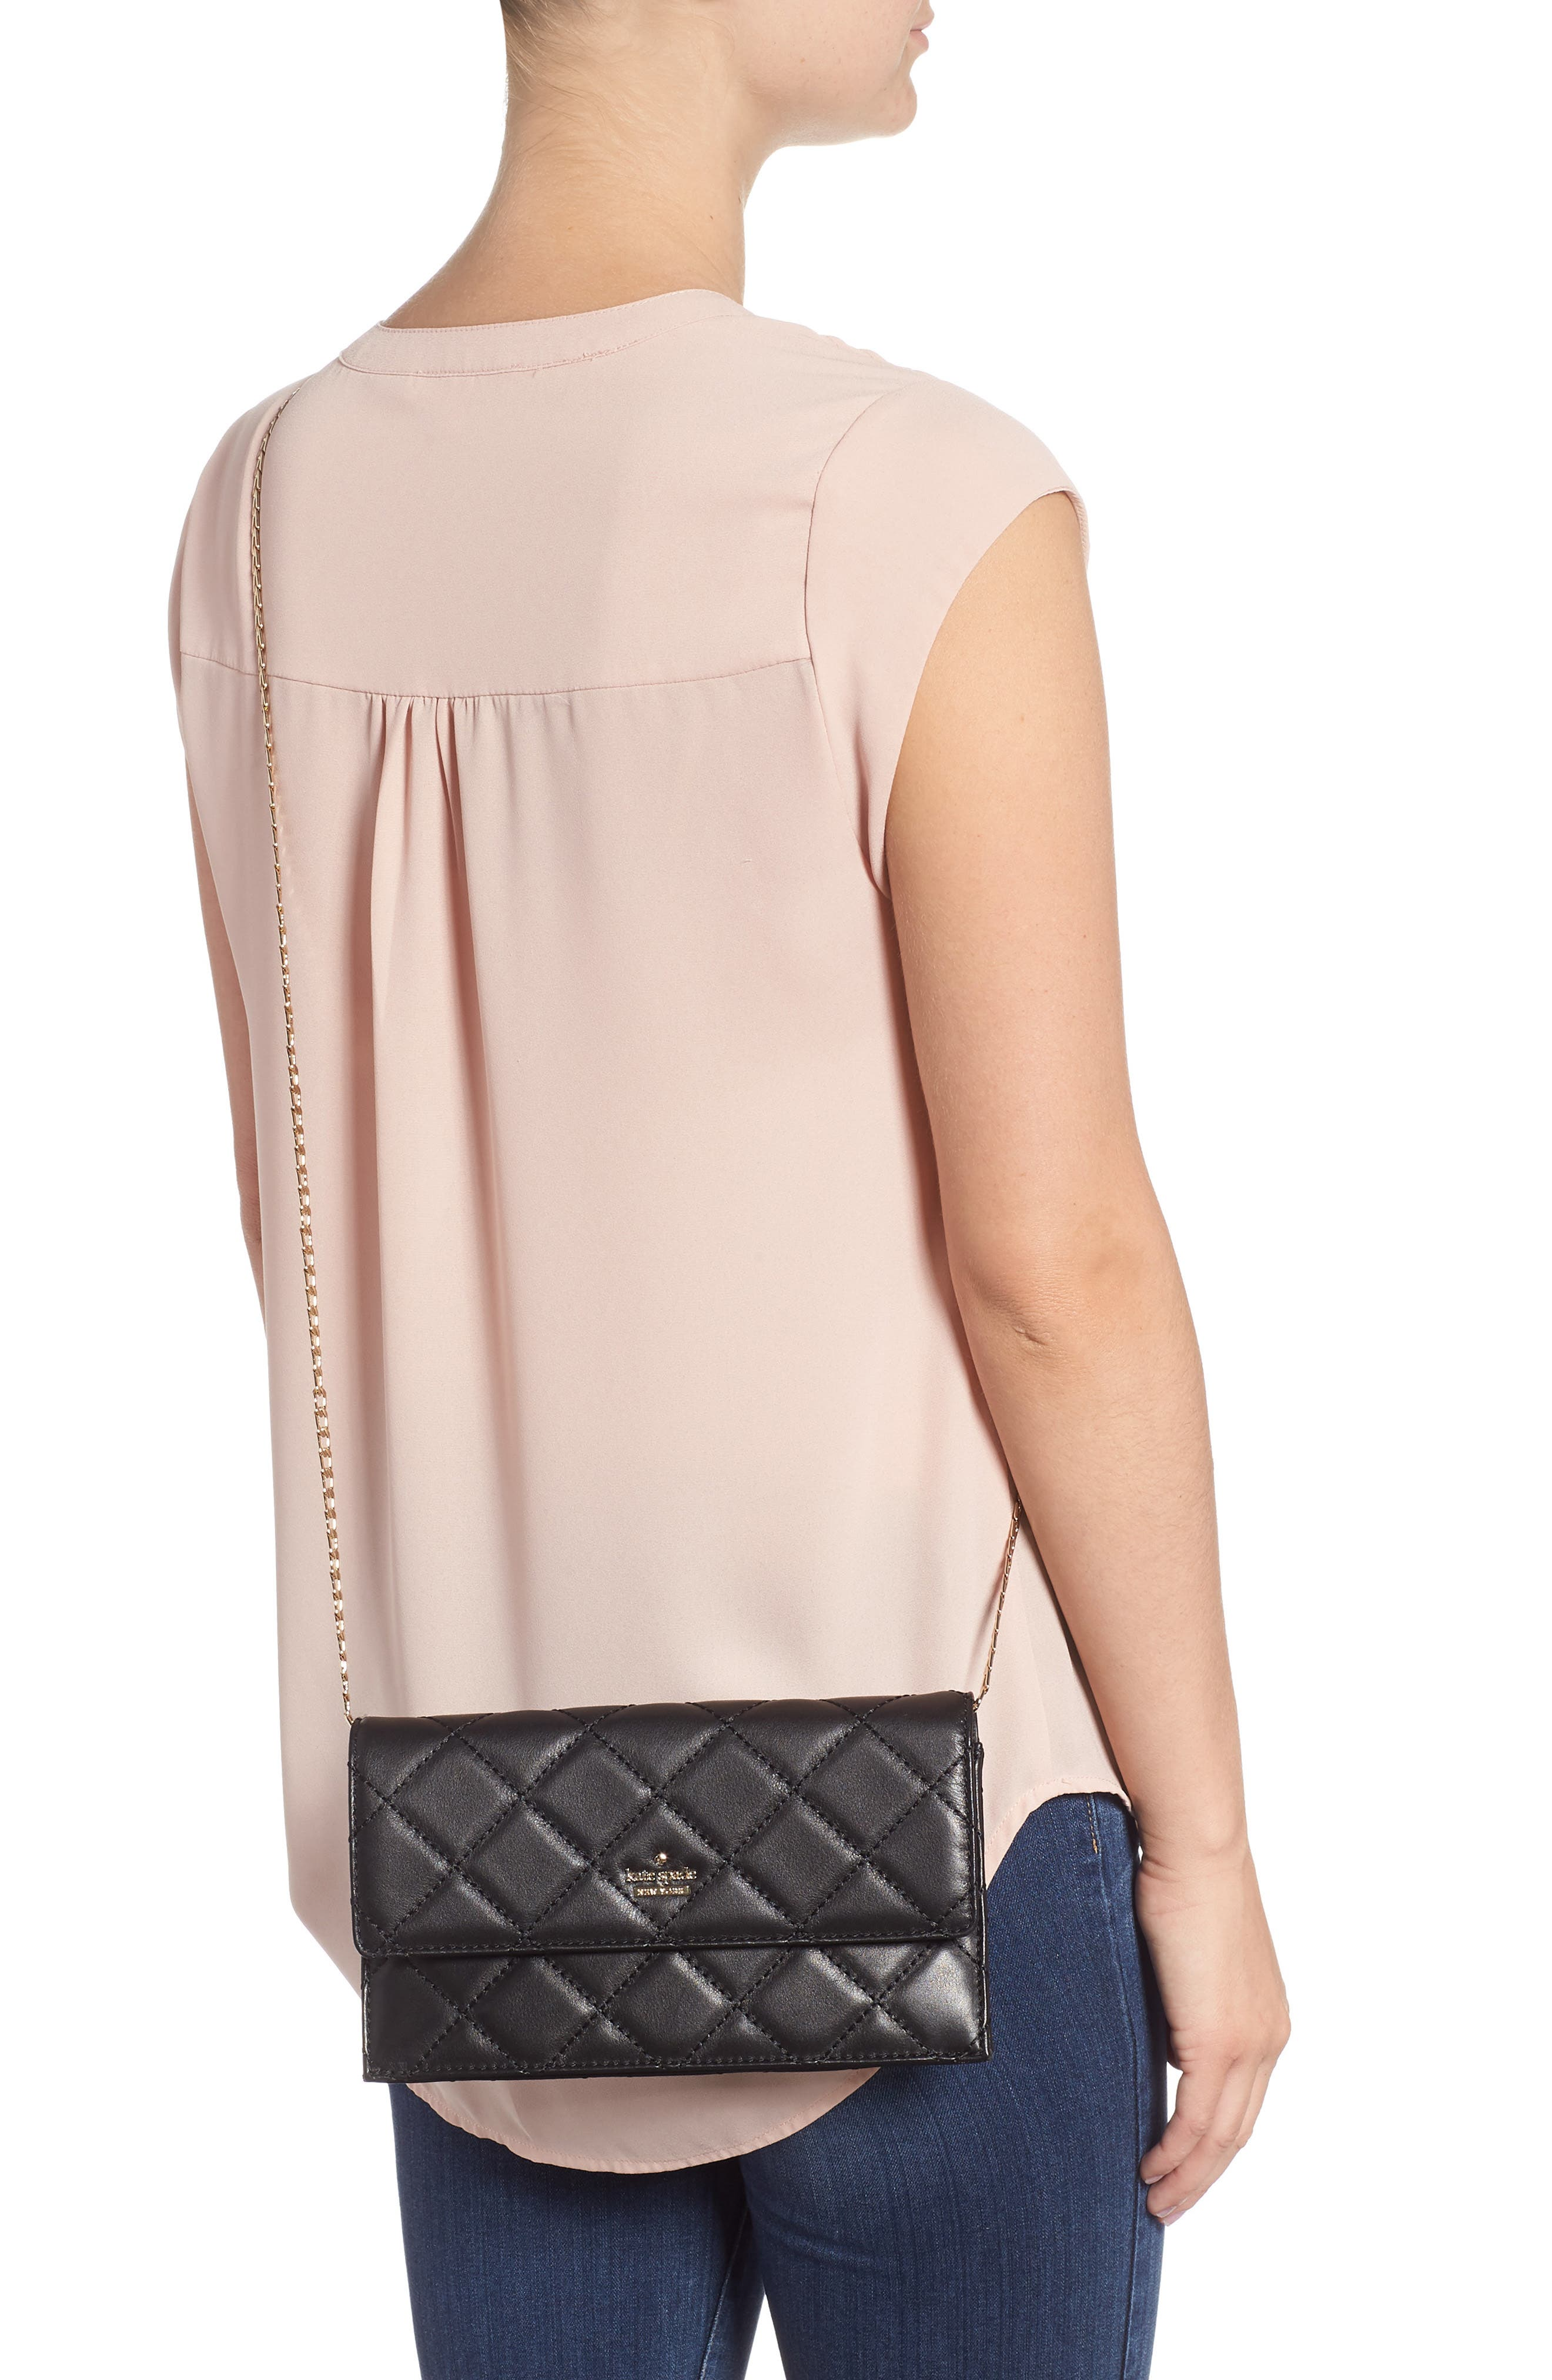 emerson place - brennan quilted leather convertible clutch & card holder,                             Alternate thumbnail 3, color,